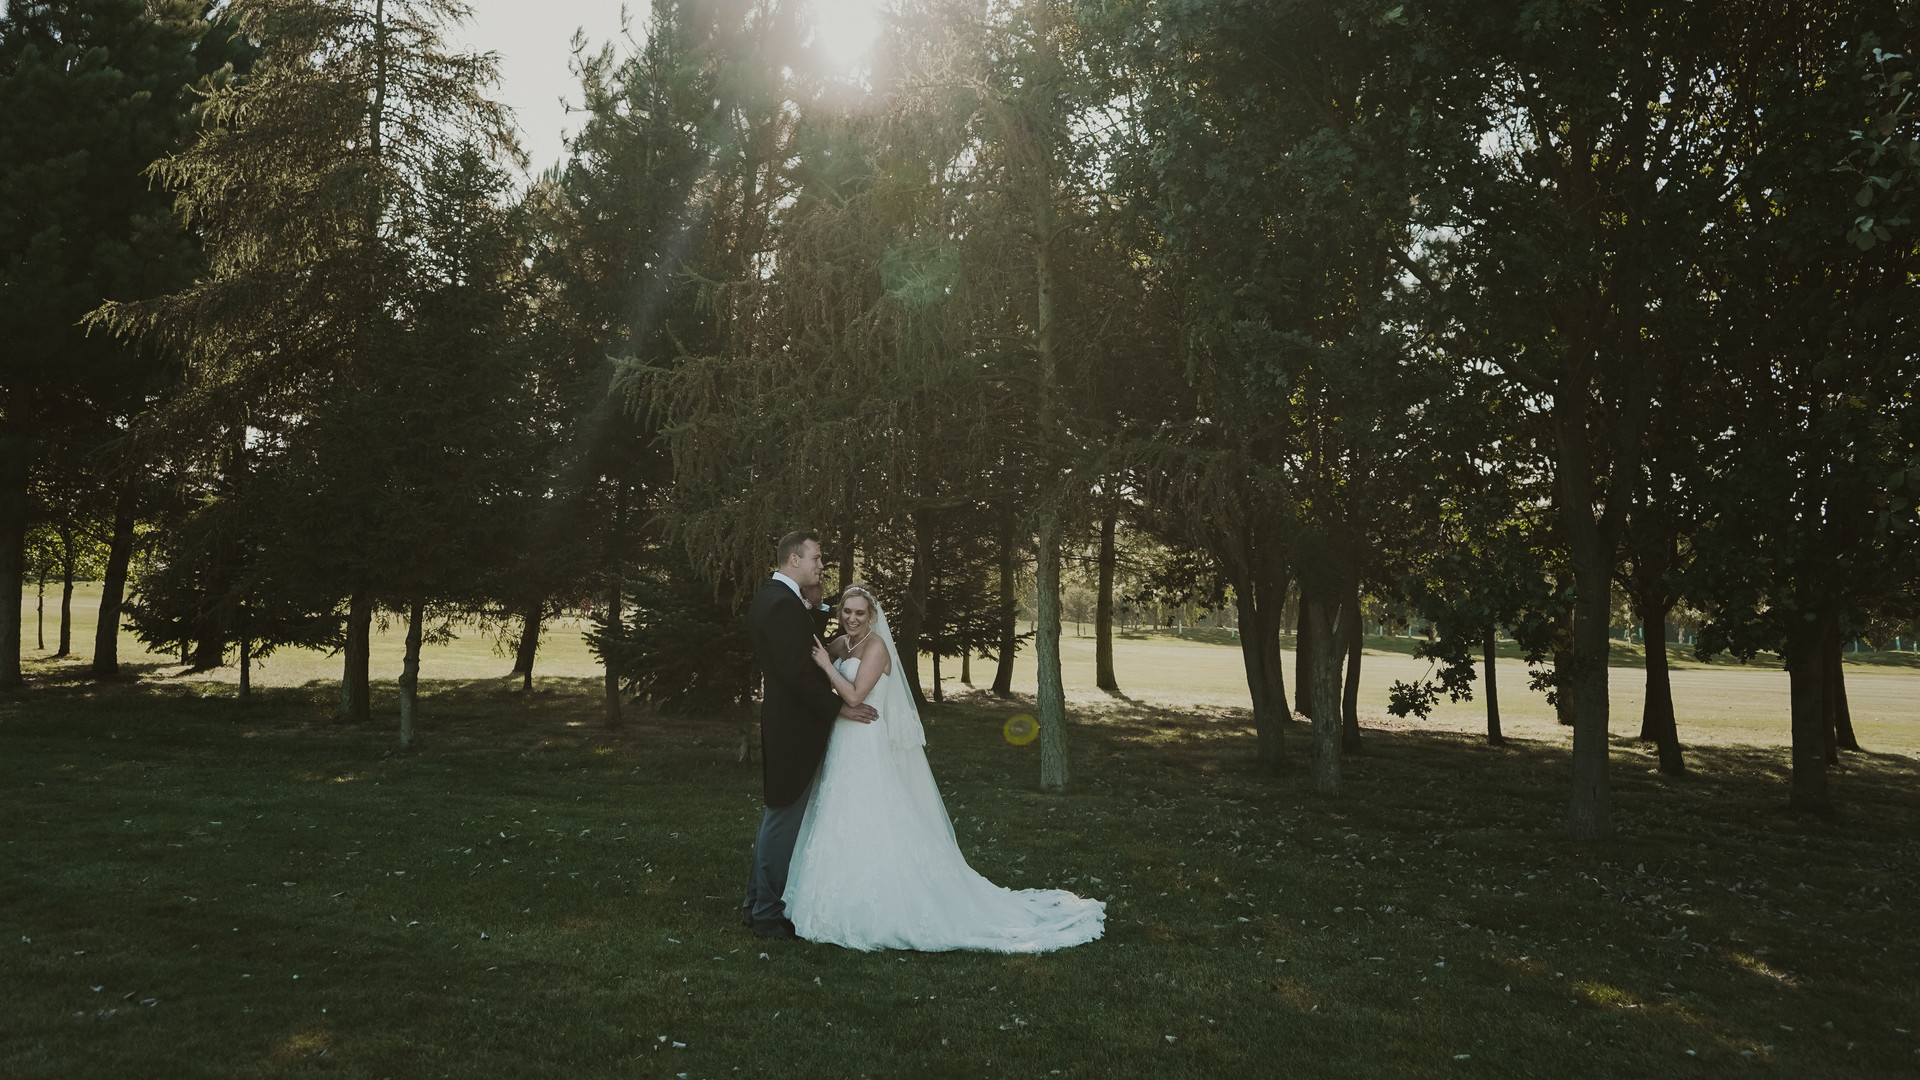 Milena & Ed's Wedding Film